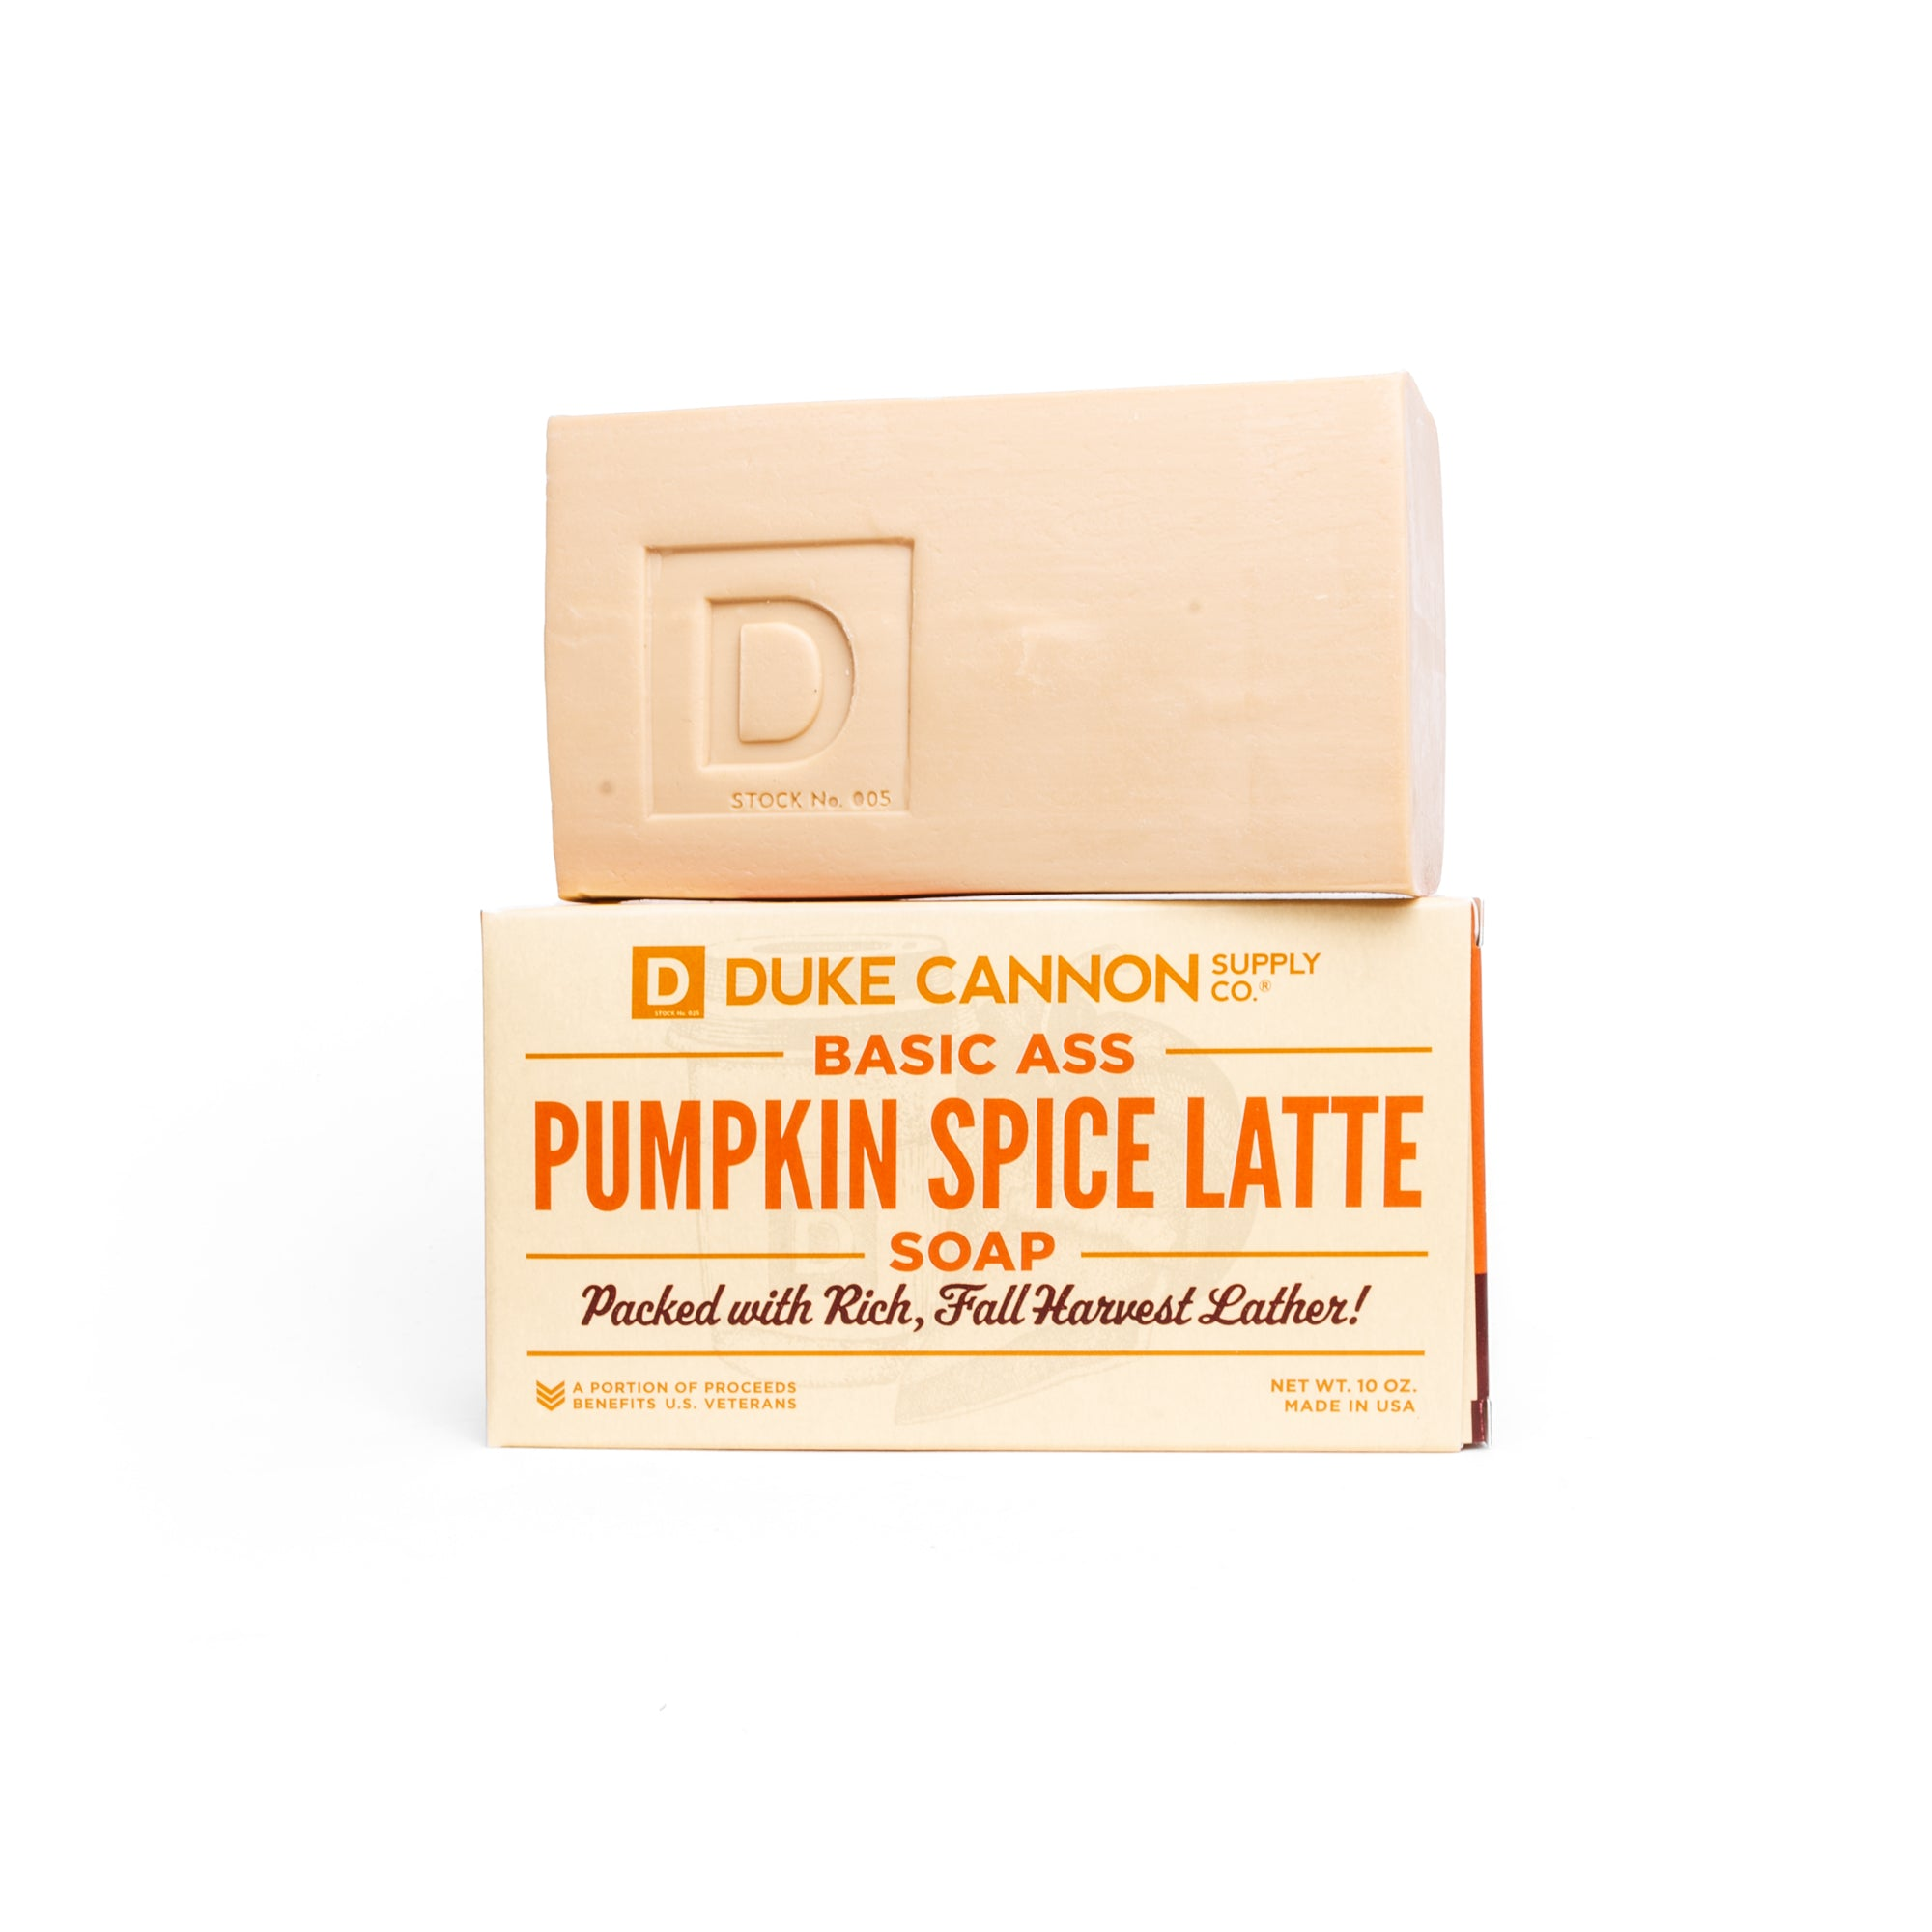 MIRACULOUSLY SOLD OUT: Basic Ass Pumpkin Spice Latte Soap